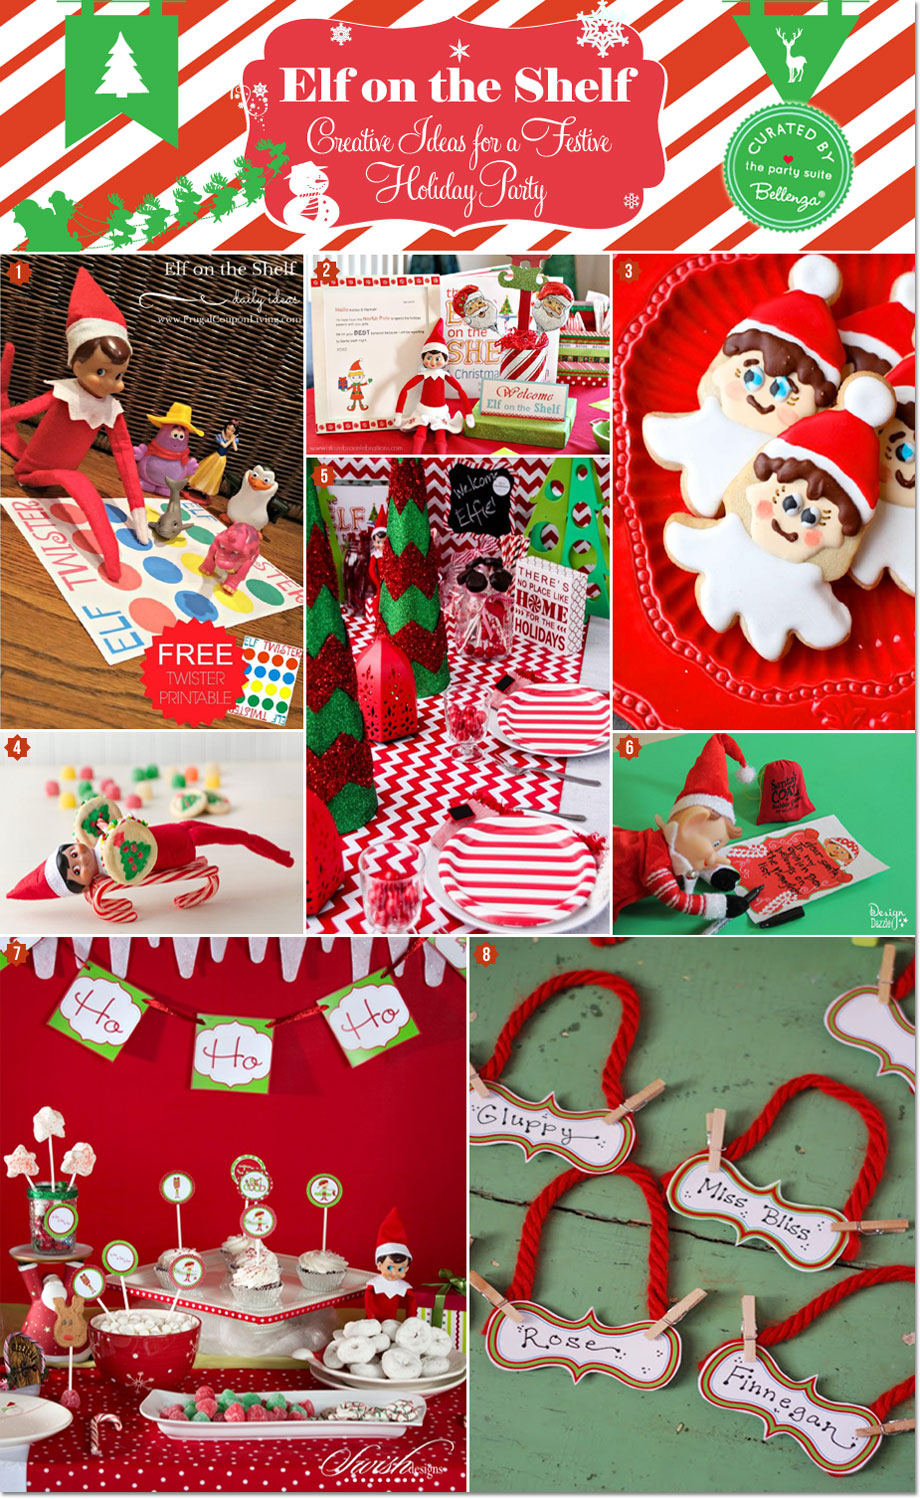 Christmas 1st Birthday Party Ideas Part - 41: Holiday Party Planning Made Easy With An Elf On The Shelf Theme!